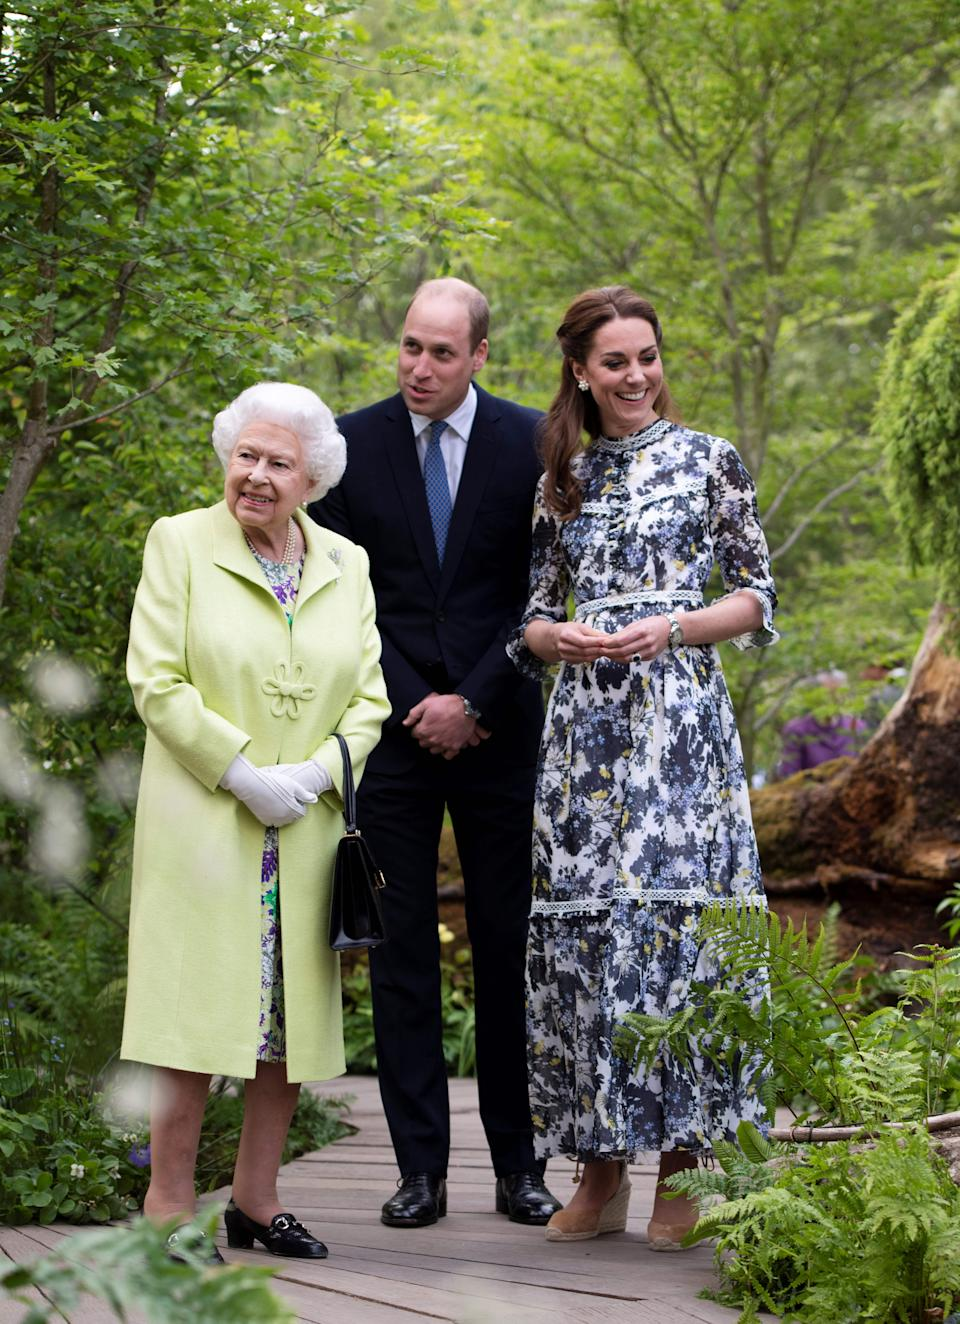 Britain's Catherine, Duchess of Cambridge (R) shows Britain's Queen Elizabeth II (L) and Britain's Prince William, Duke of Cambridge, around the 'Back to Nature Garden' garden, that she designed along with Andree Davies and Adam White, during their visit to the 2019 RHS Chelsea Flower Show in London on May 20, 2019. - The Chelsea flower show is held annually in the grounds of the Royal Hospital Chelsea. (Photo by Geoff Pugh / POOL / AFP)        (Photo credit should read GEOFF PUGH/AFP via Getty Images)